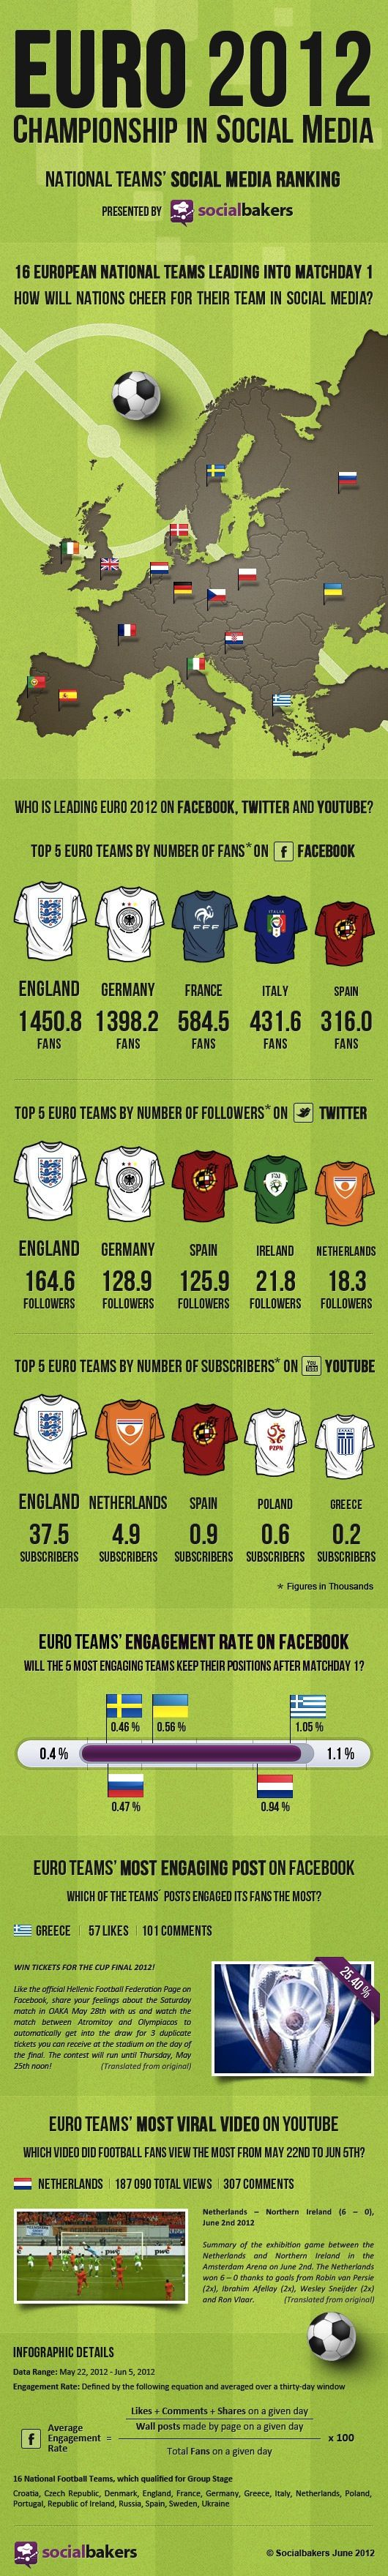 Popularity study of the Euro 2012 teams.   http://www.socialbakers.com/blog/612-euro-2012-national-teams-compete-for-championship-victory-in-social-media/